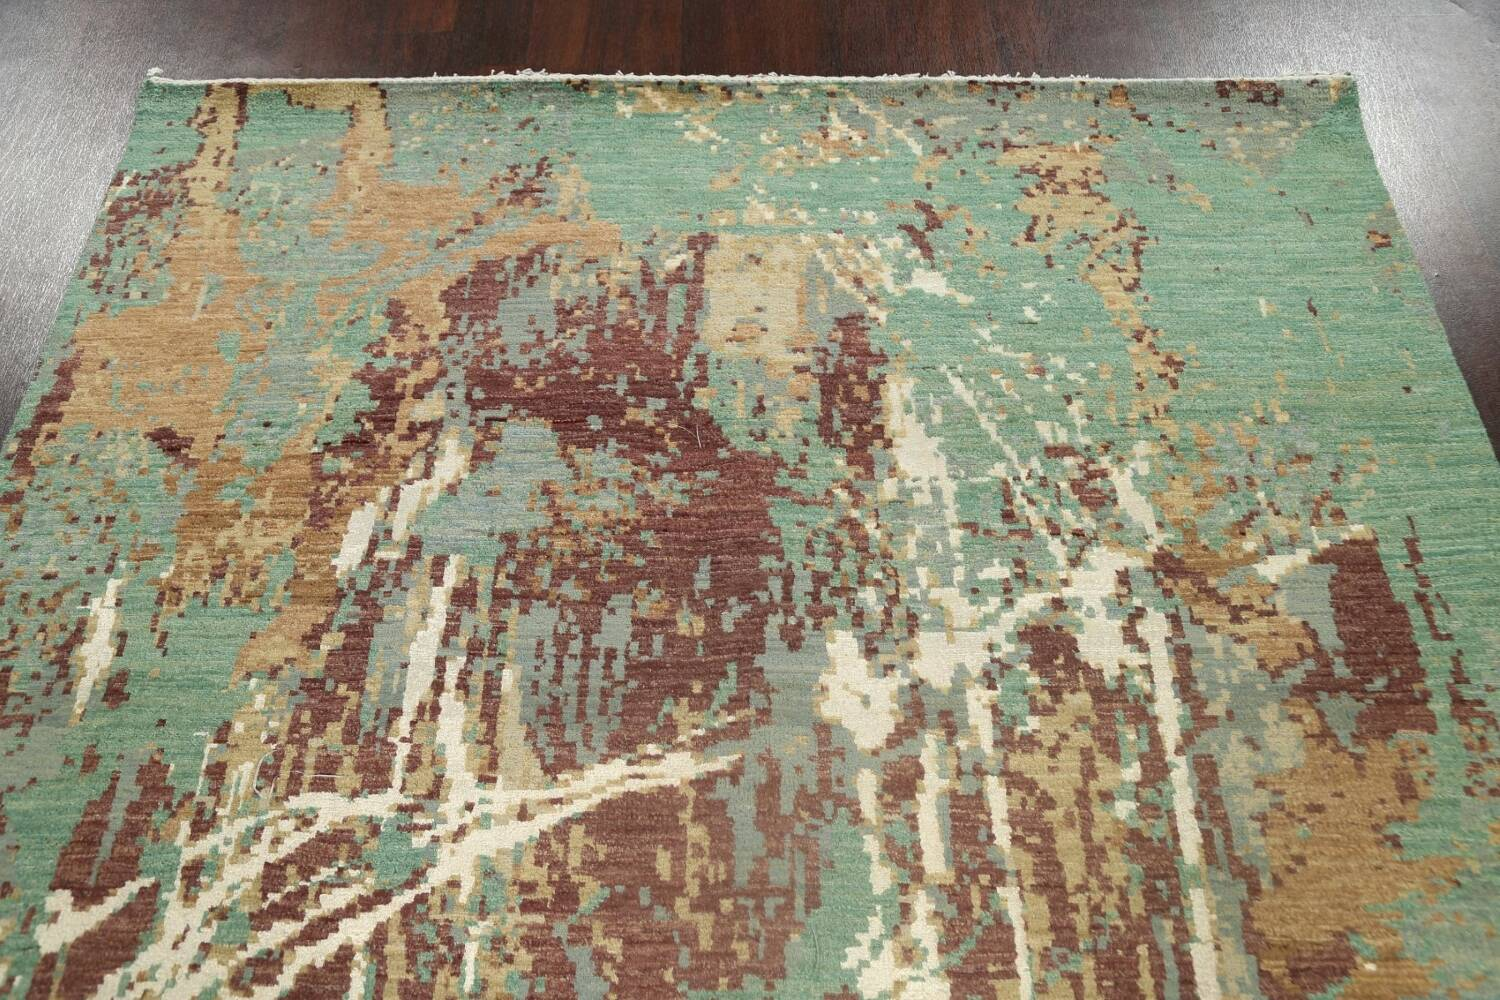 Vegetable Dye Contemporary Abstract Oriental Area Rug 6x9 image 13